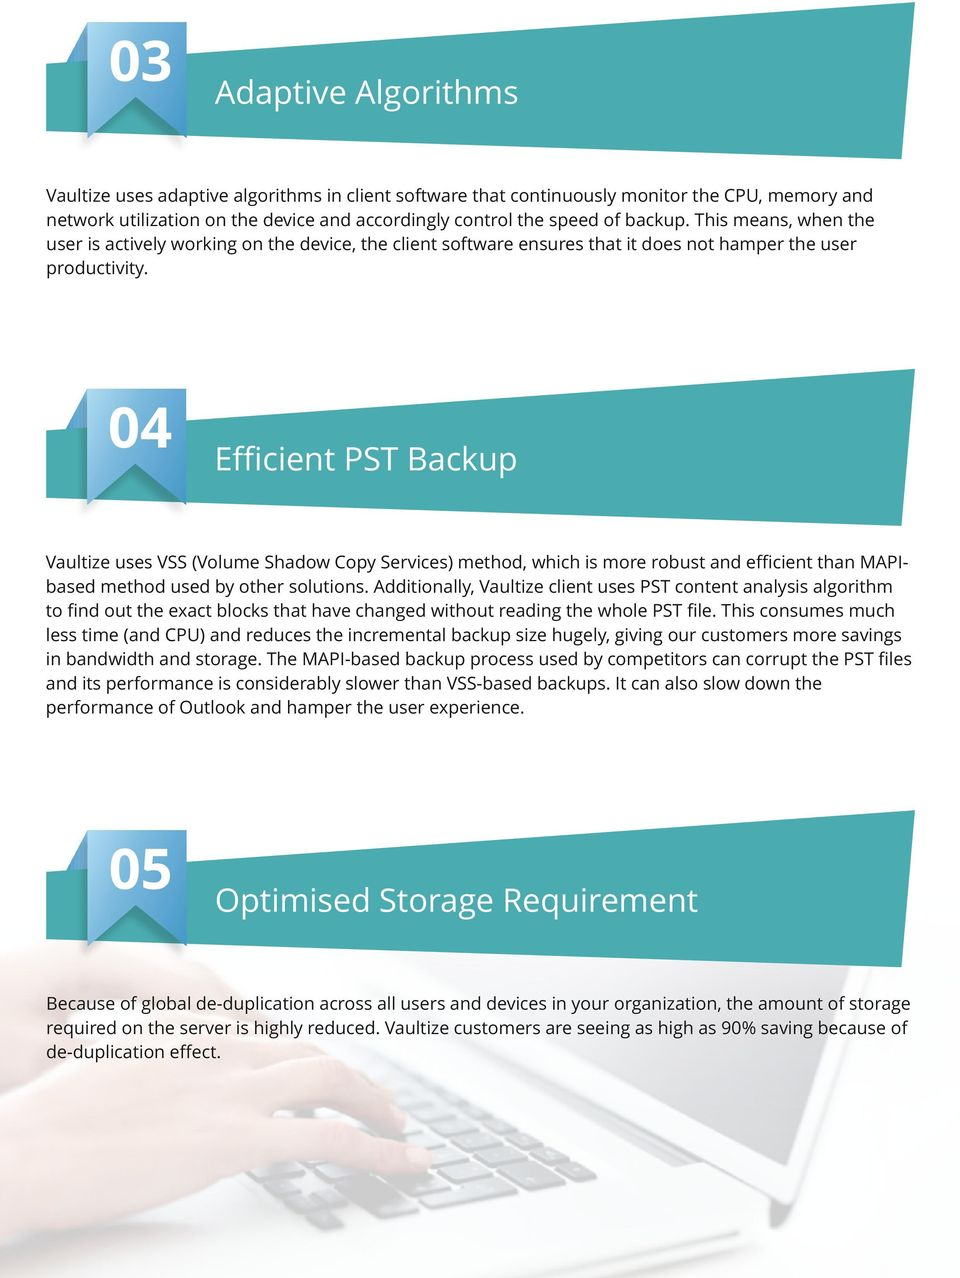 04 Efficient PST Backup Vaultize uses VSS (Volume Shadow Copy Services) method, which is more robust and efficient than MAPIbased method used by other solutions.